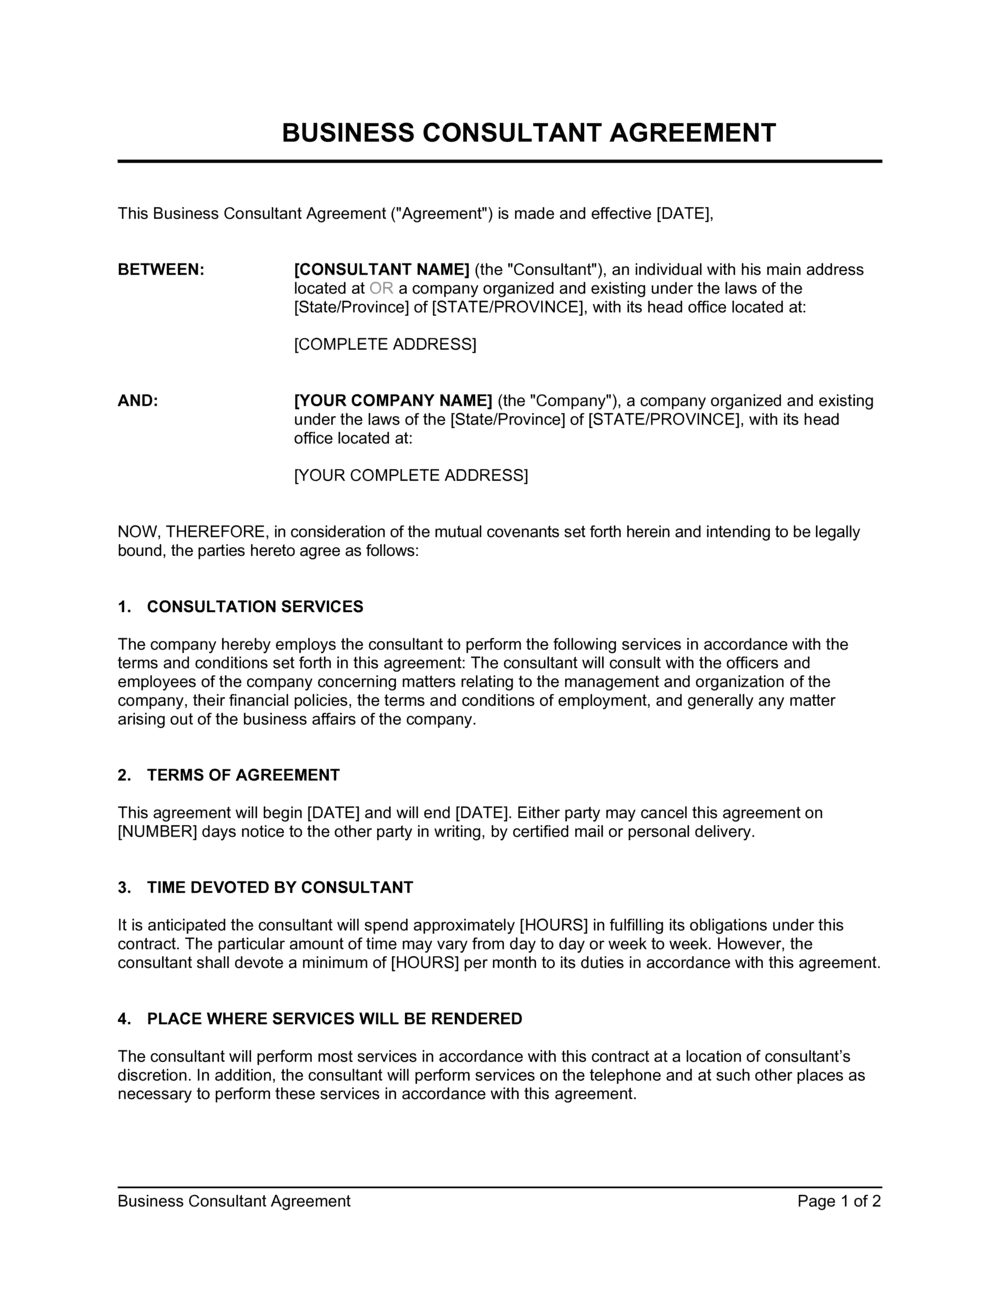 Business-in-a-Box's Consulting Agreement Short Template